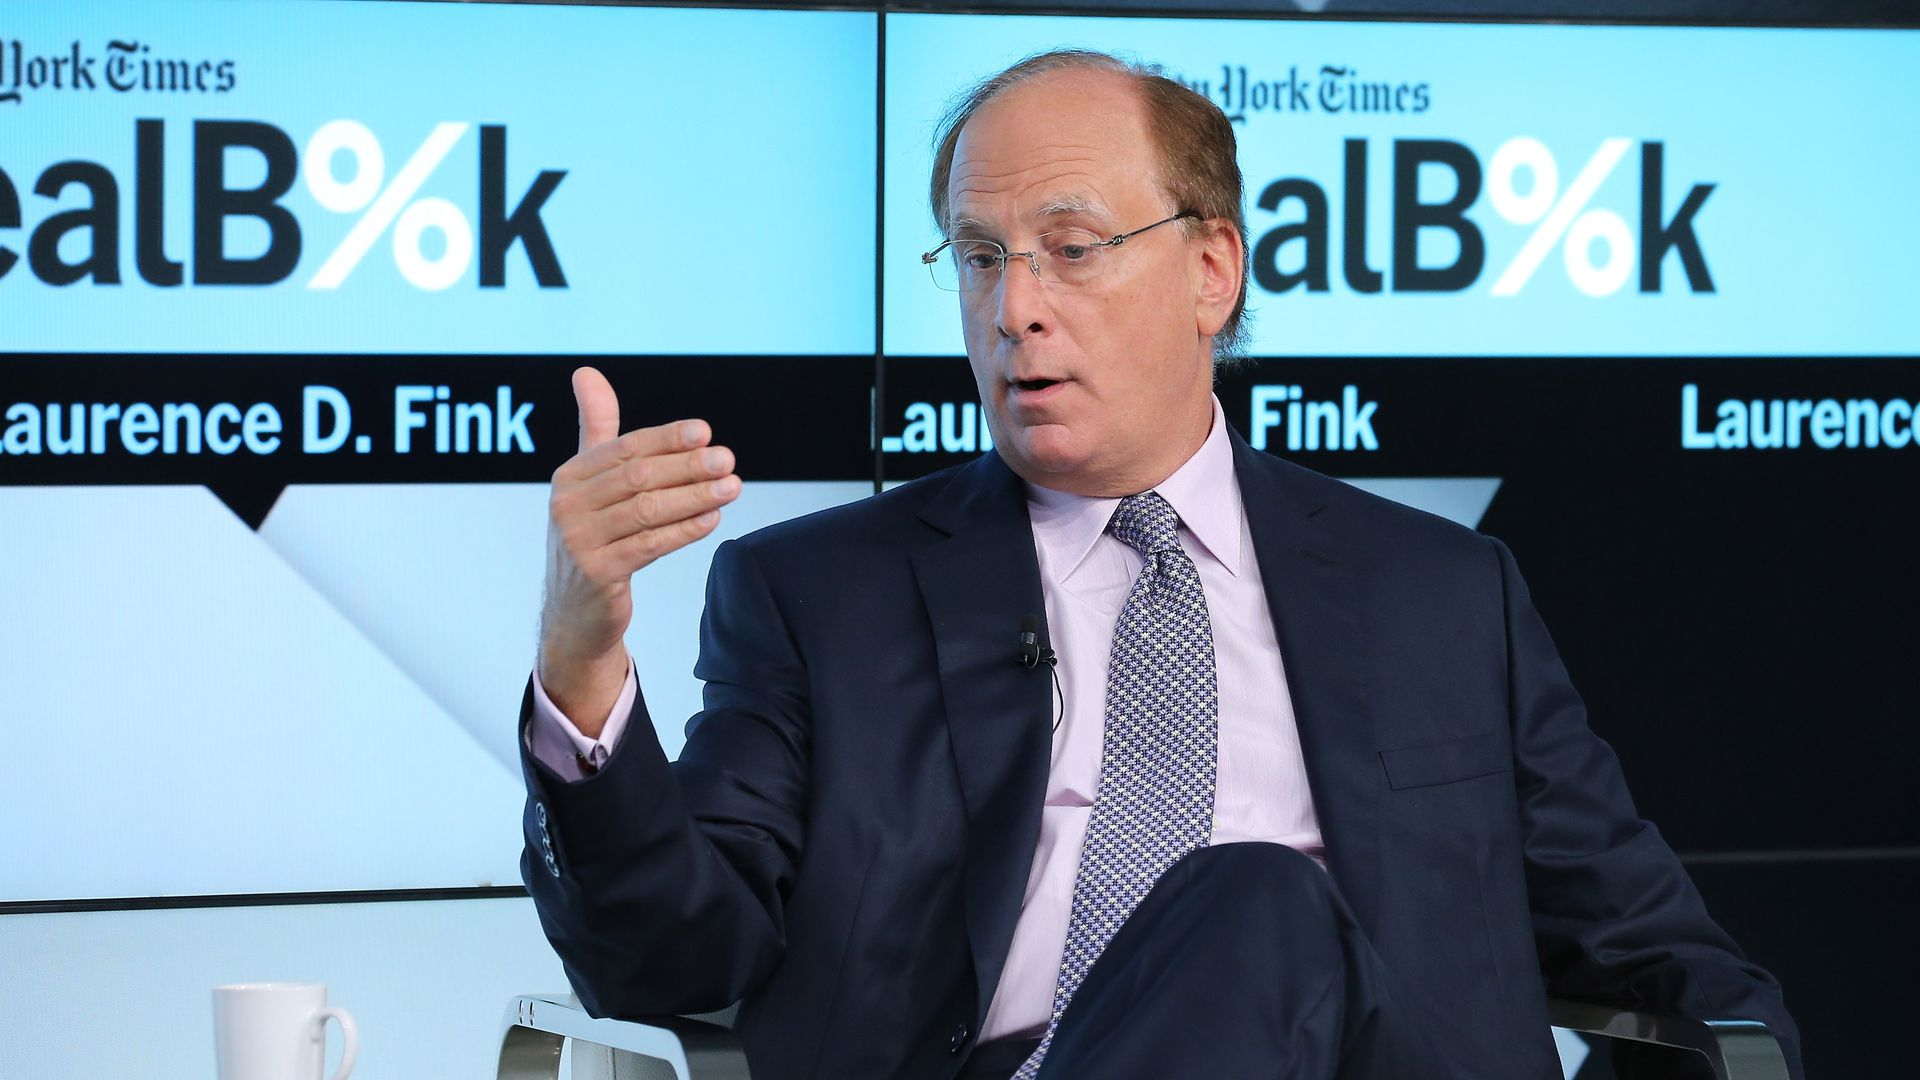 Larry Fink at New York Times Dealbook Conference